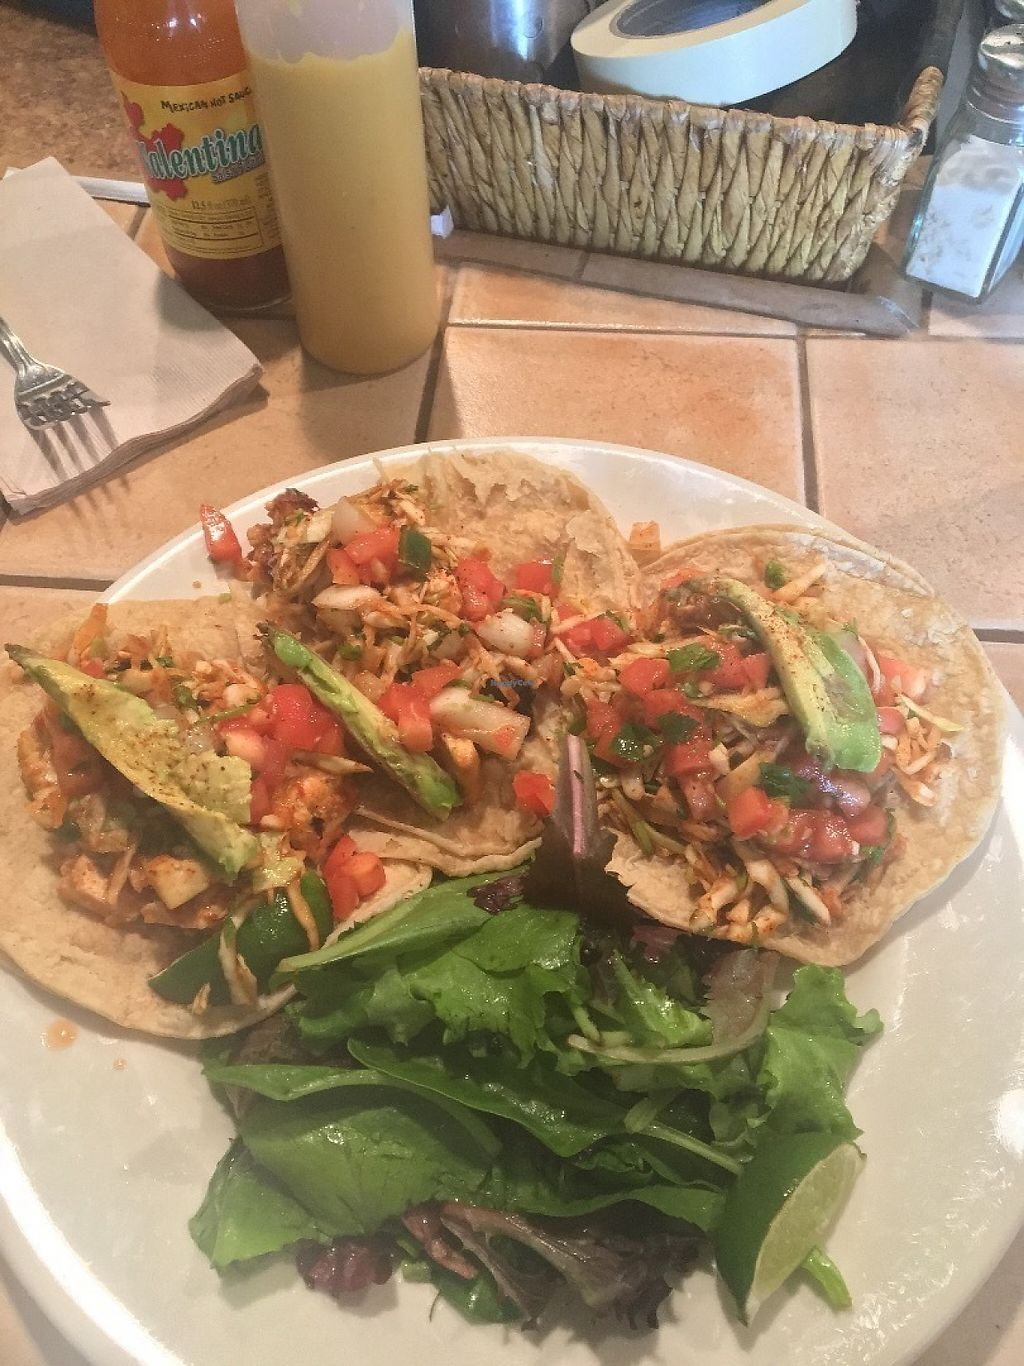 "Photo of Kayak Kafe  by <a href=""/members/profile/ireneatlife"">ireneatlife</a> <br/>tiger tofu tacos on corn tortillas  <br/> May 24, 2017  - <a href='/contact/abuse/image/24189/262125'>Report</a>"